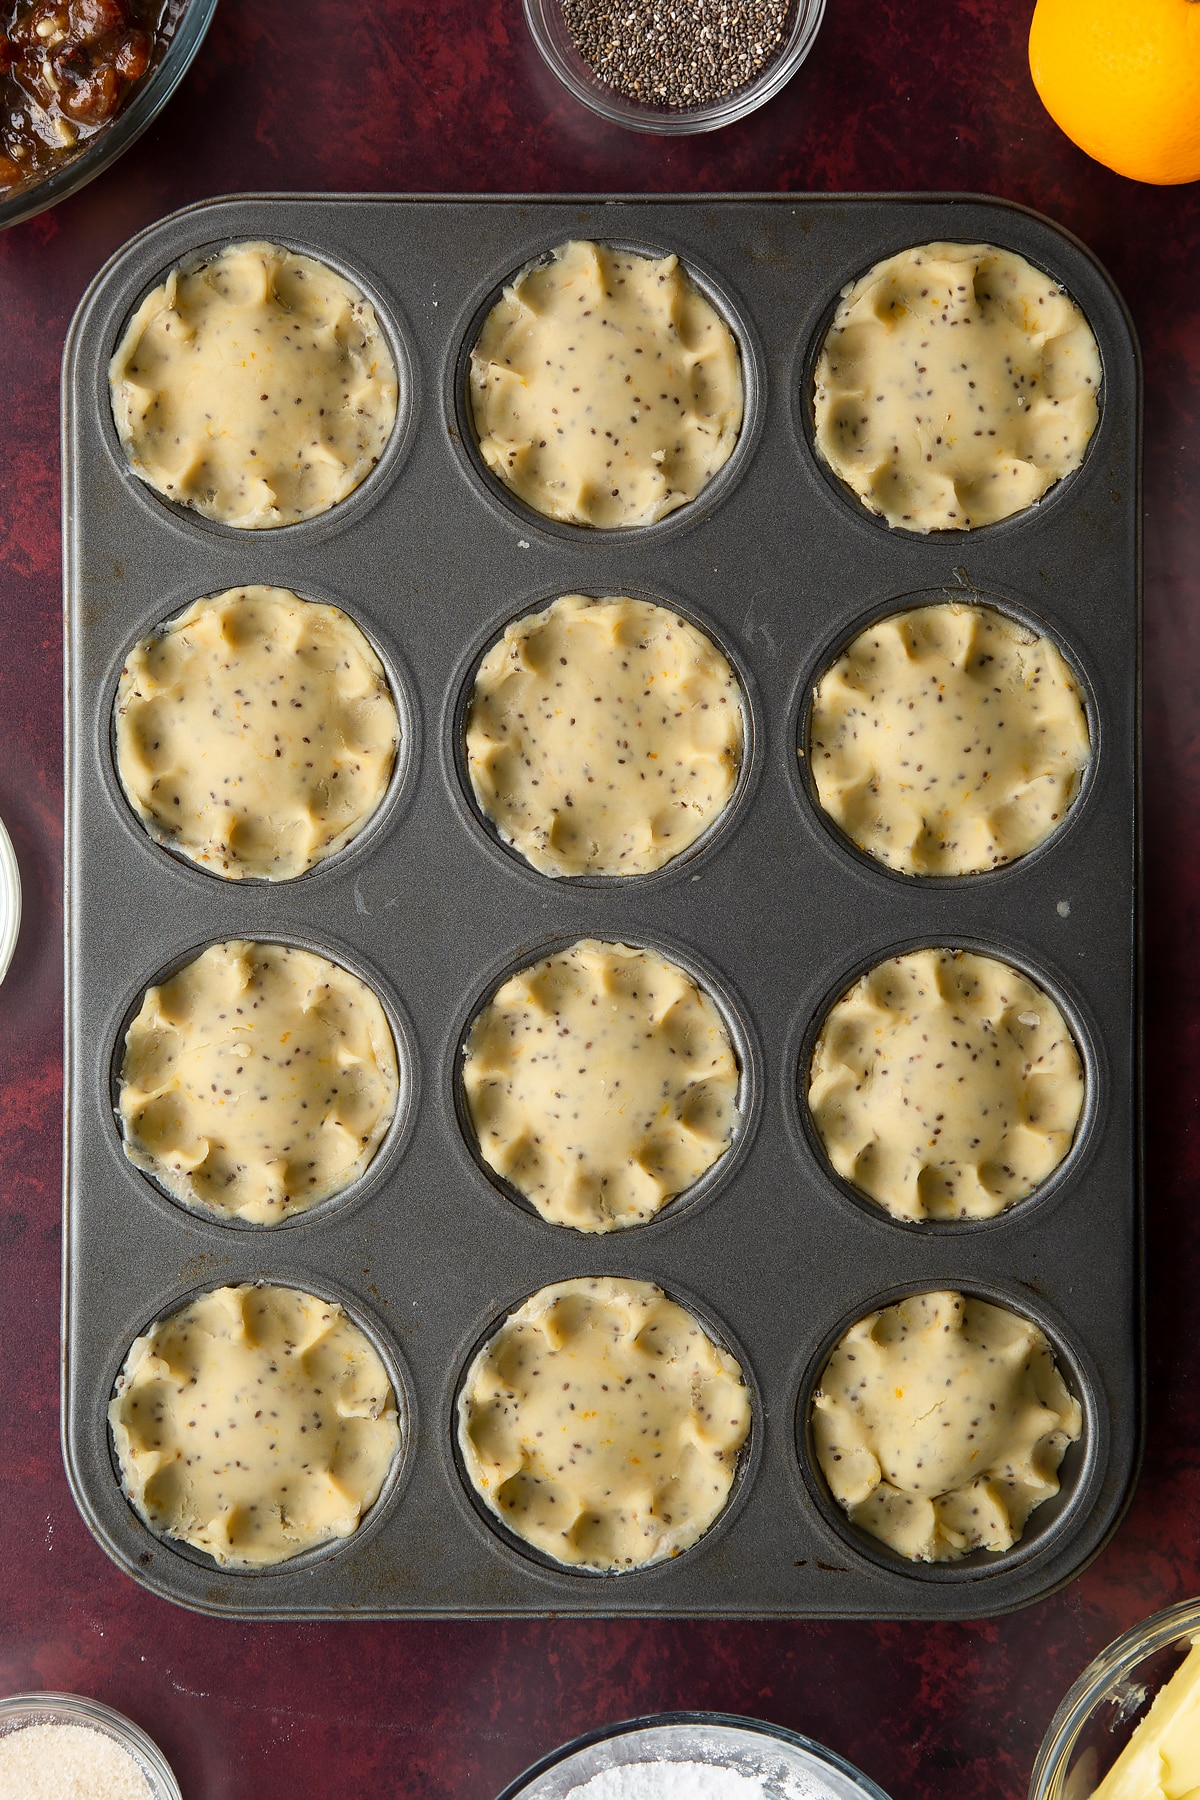 Uncooked vegan mince pies in a 12-hole muffin tray.